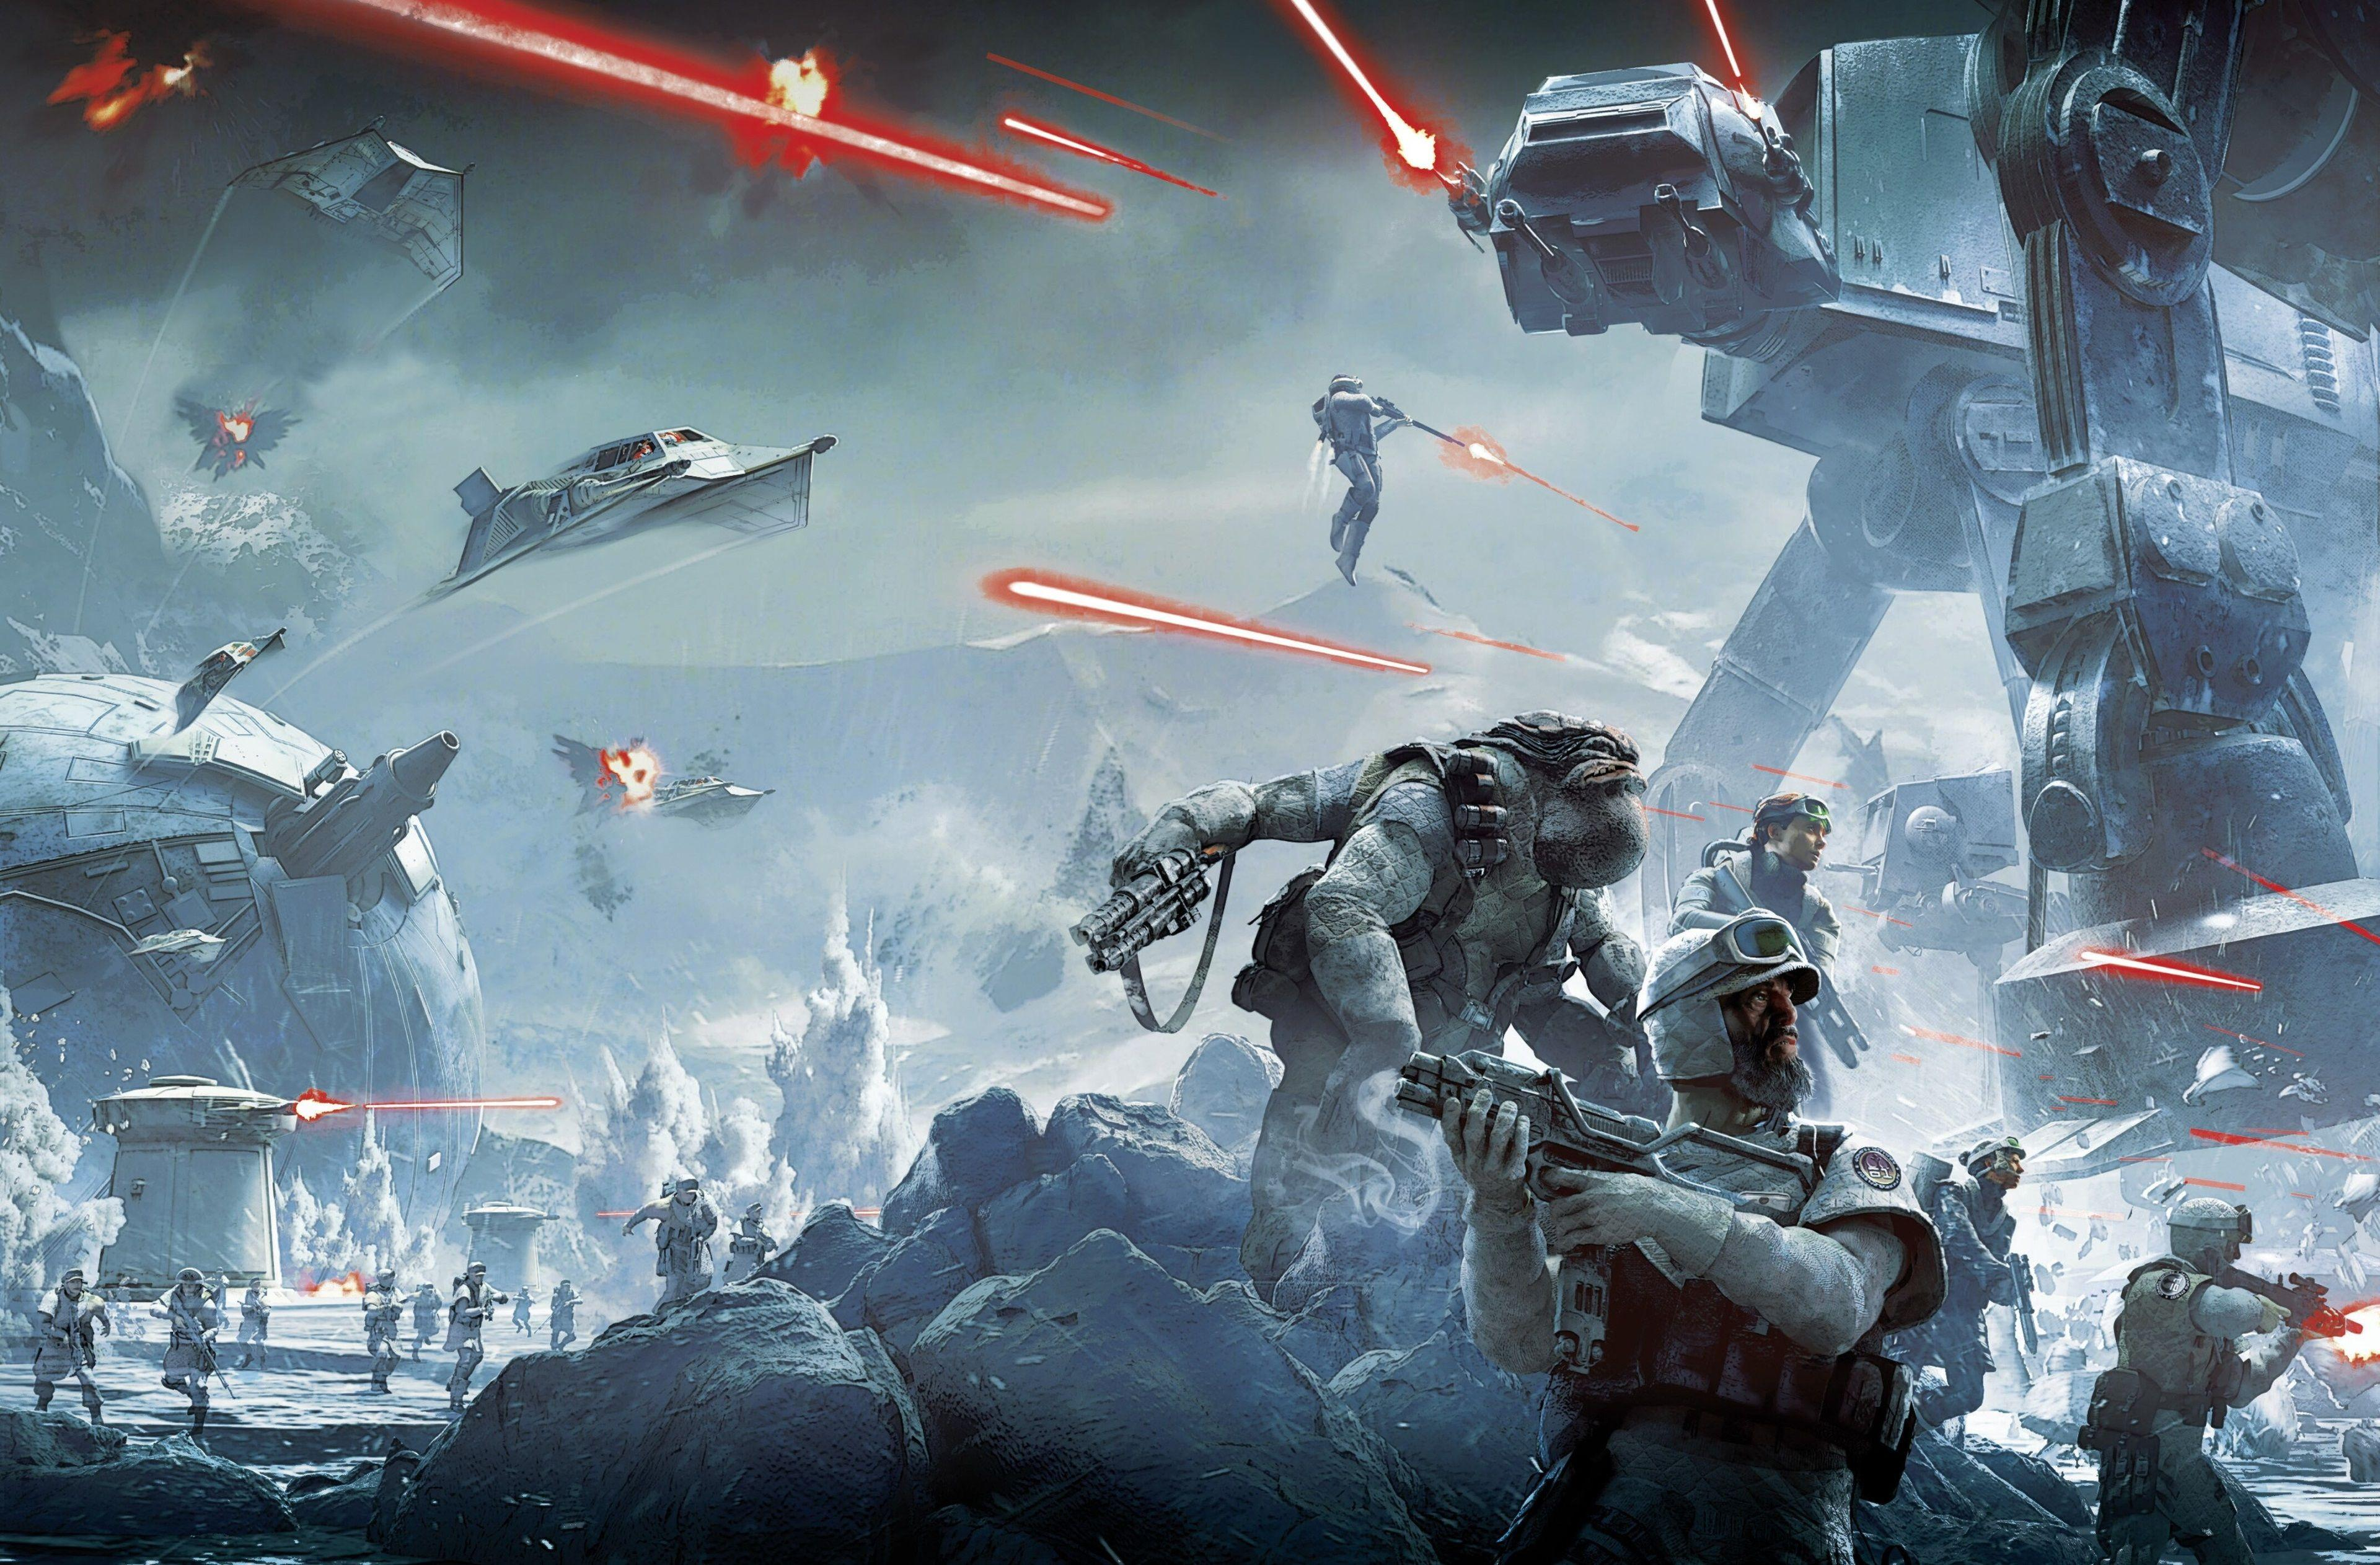 Star Wars The Clone Wars Wallpaper , 64+ image collections